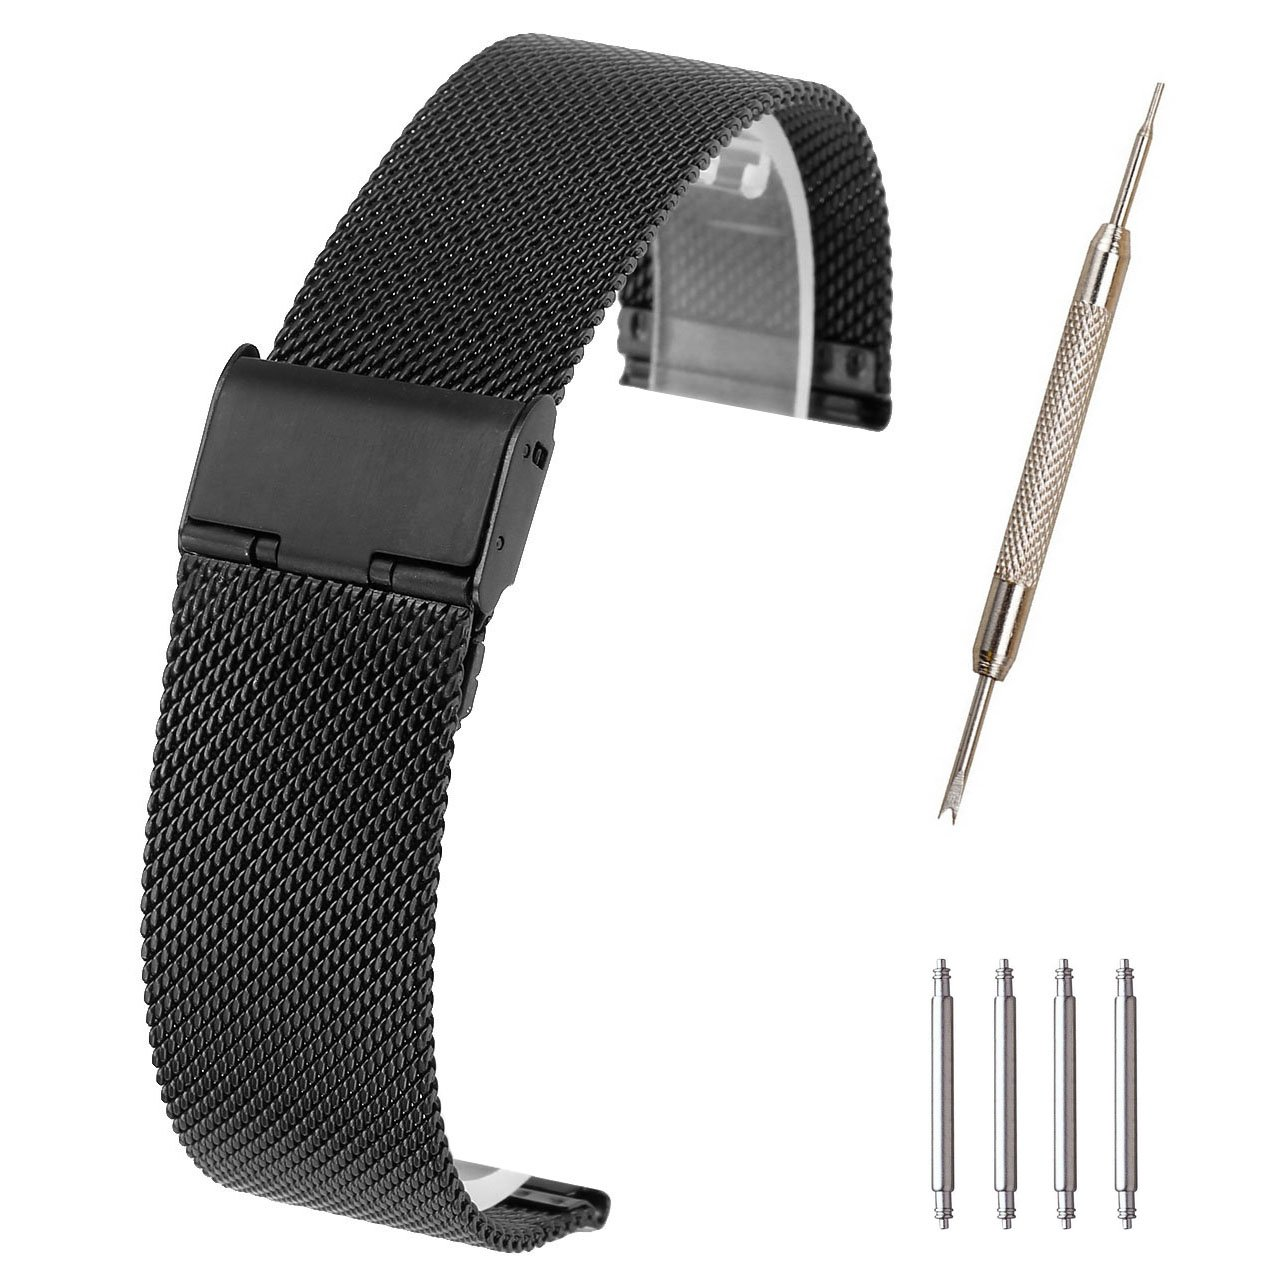 Top Plaza 20mm Stainless Steel Bracelet Wrist Watch Band Replacement Braided Mesh Metal Strap Interlock Safety Clasp(Black)